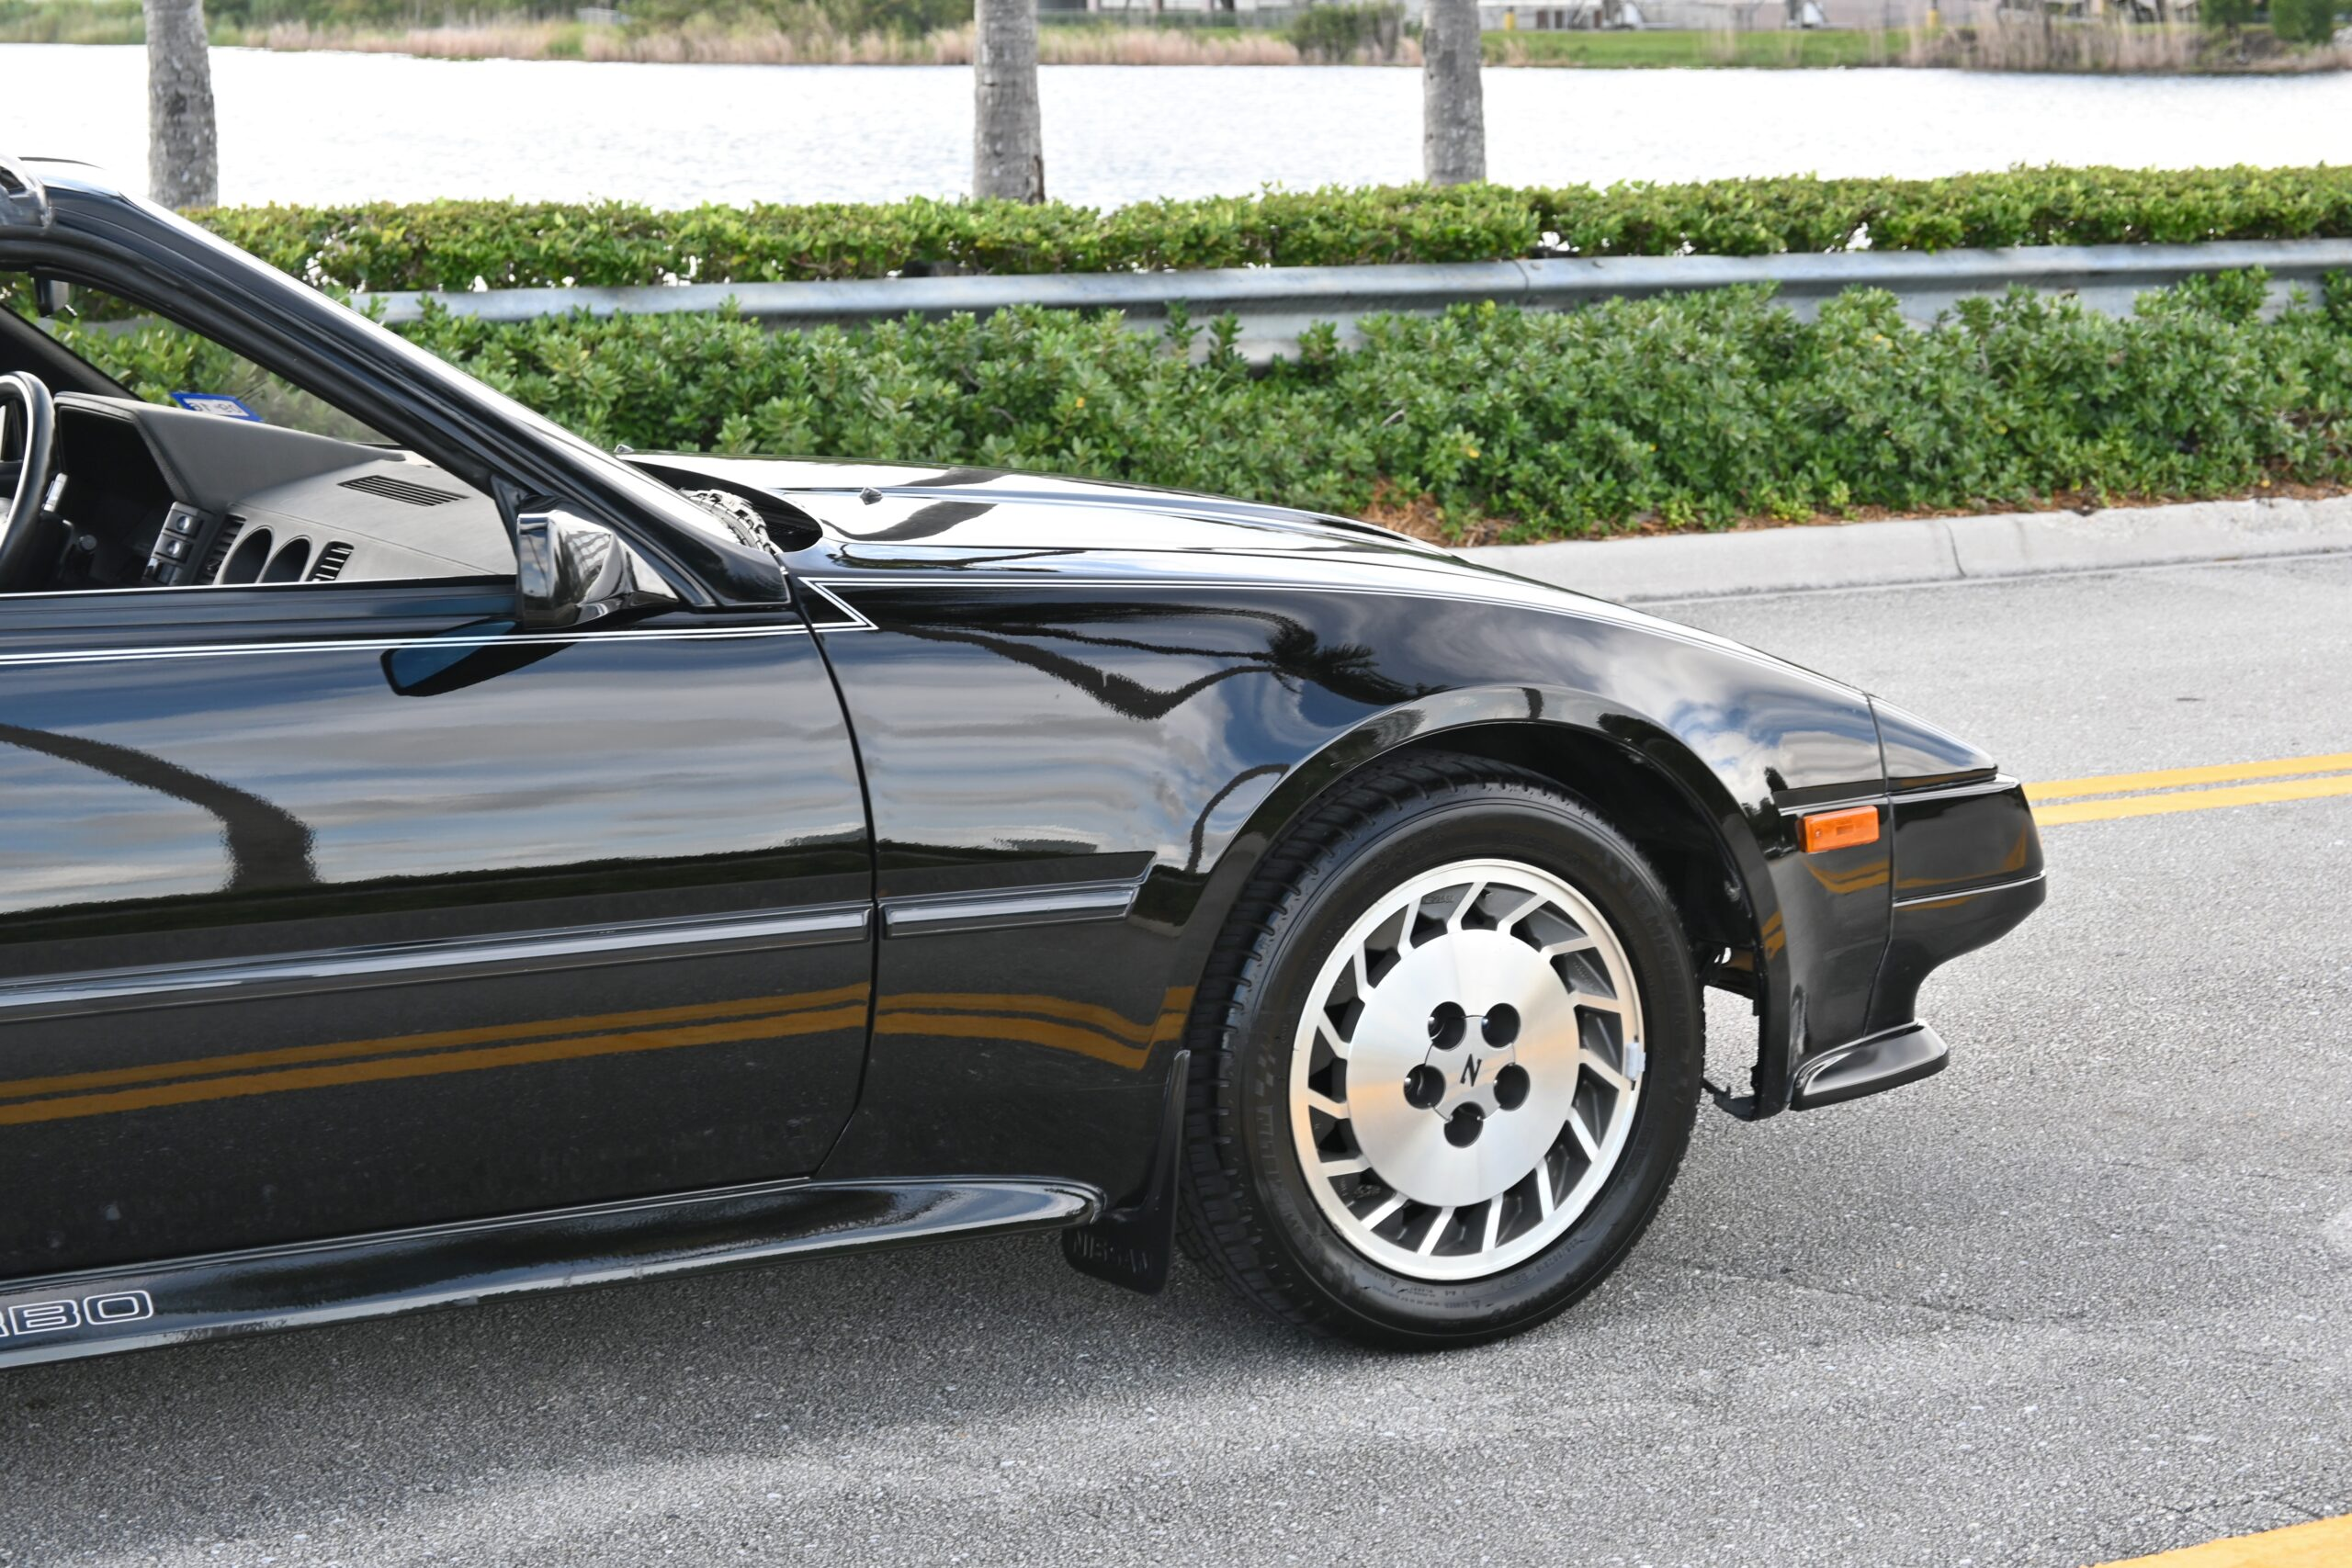 1986 Nissan 300ZX Z31 TURBO 1 Owner Only 43K Miles- Original Paint- 5 Speed Manual – Leather Sport Seats -100% Stock